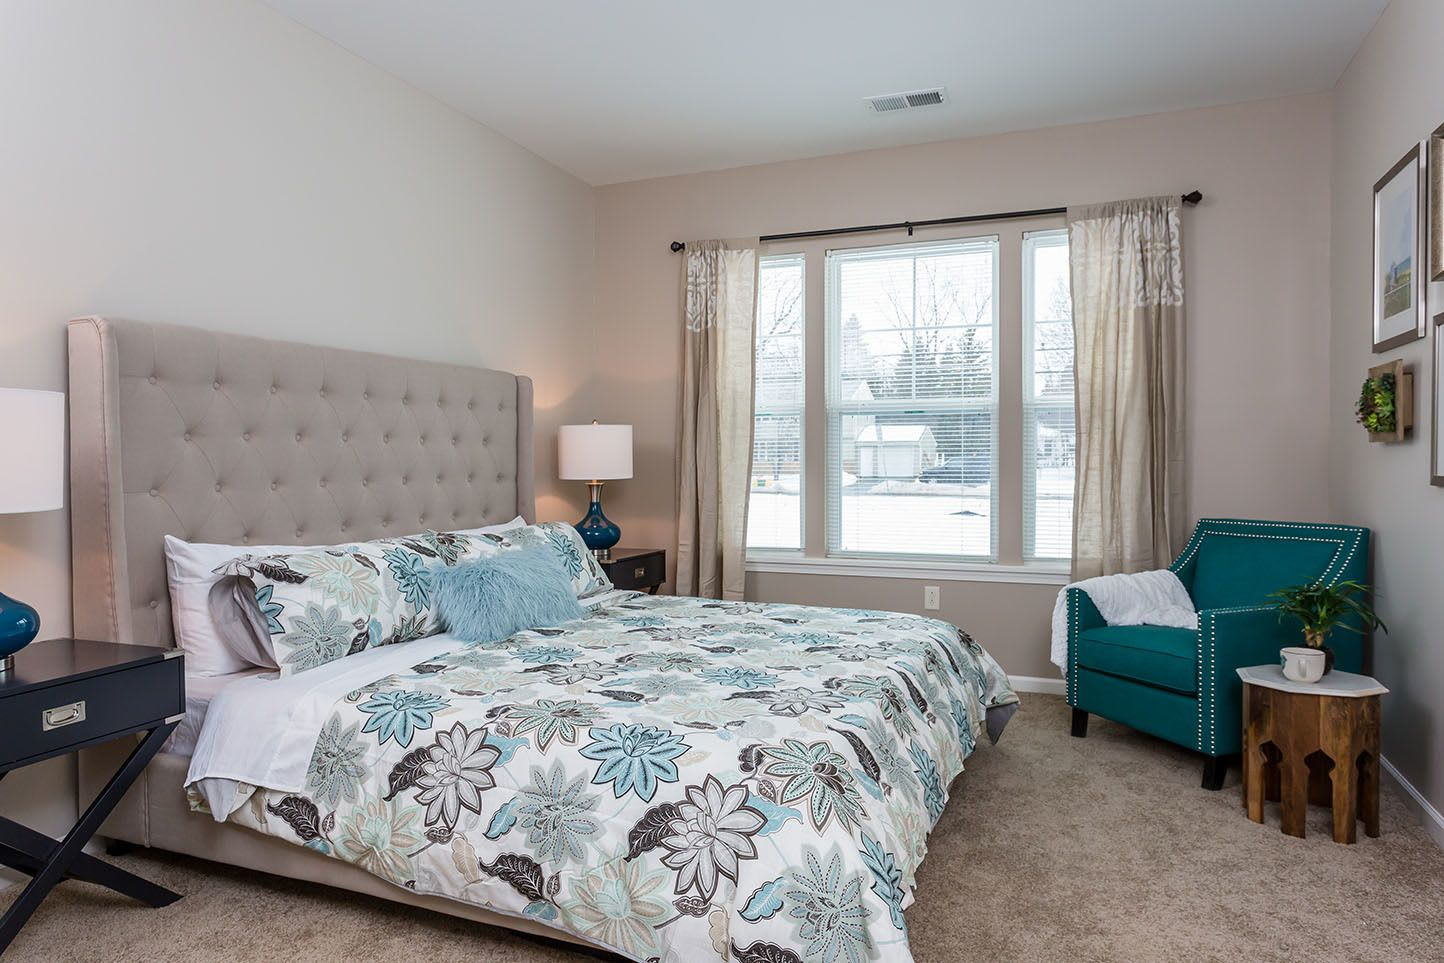 Master Bedroom of Townhome at Marquis at the Woods